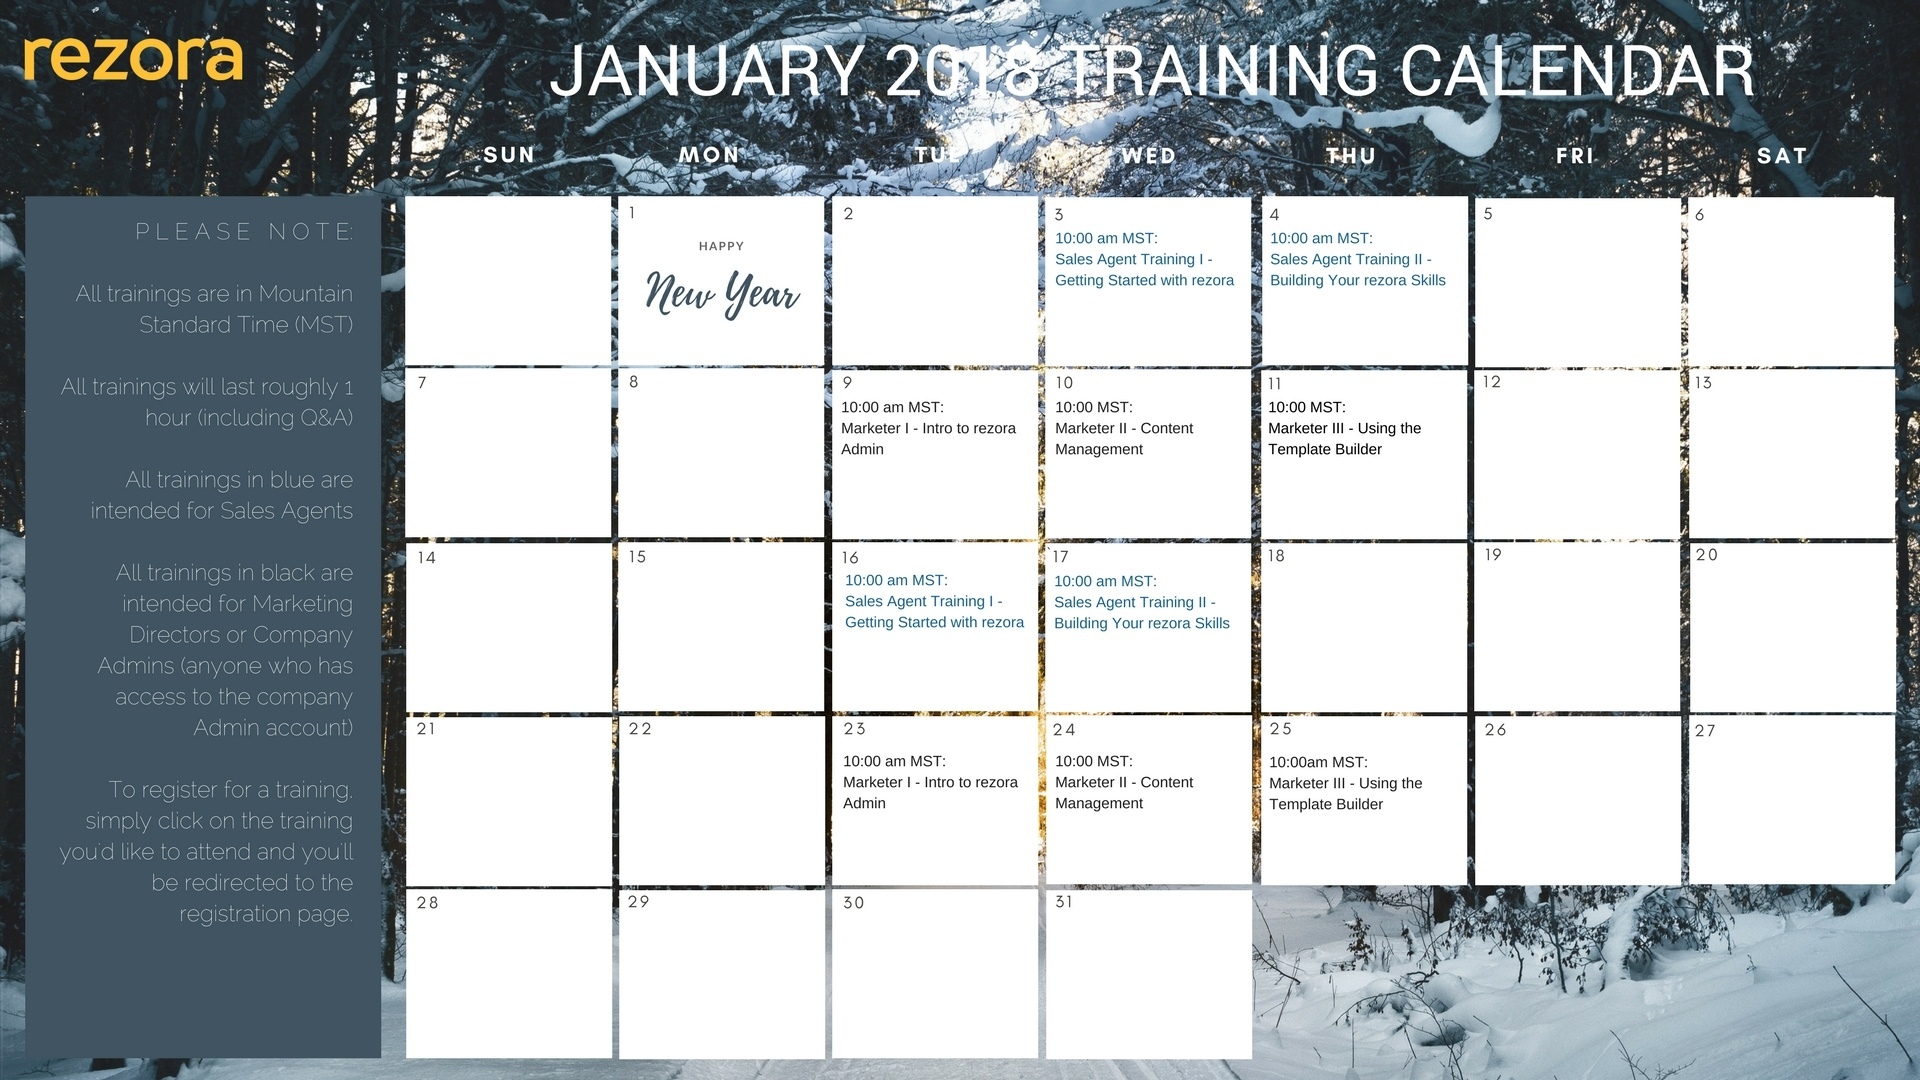 January Training Calendar.jpg